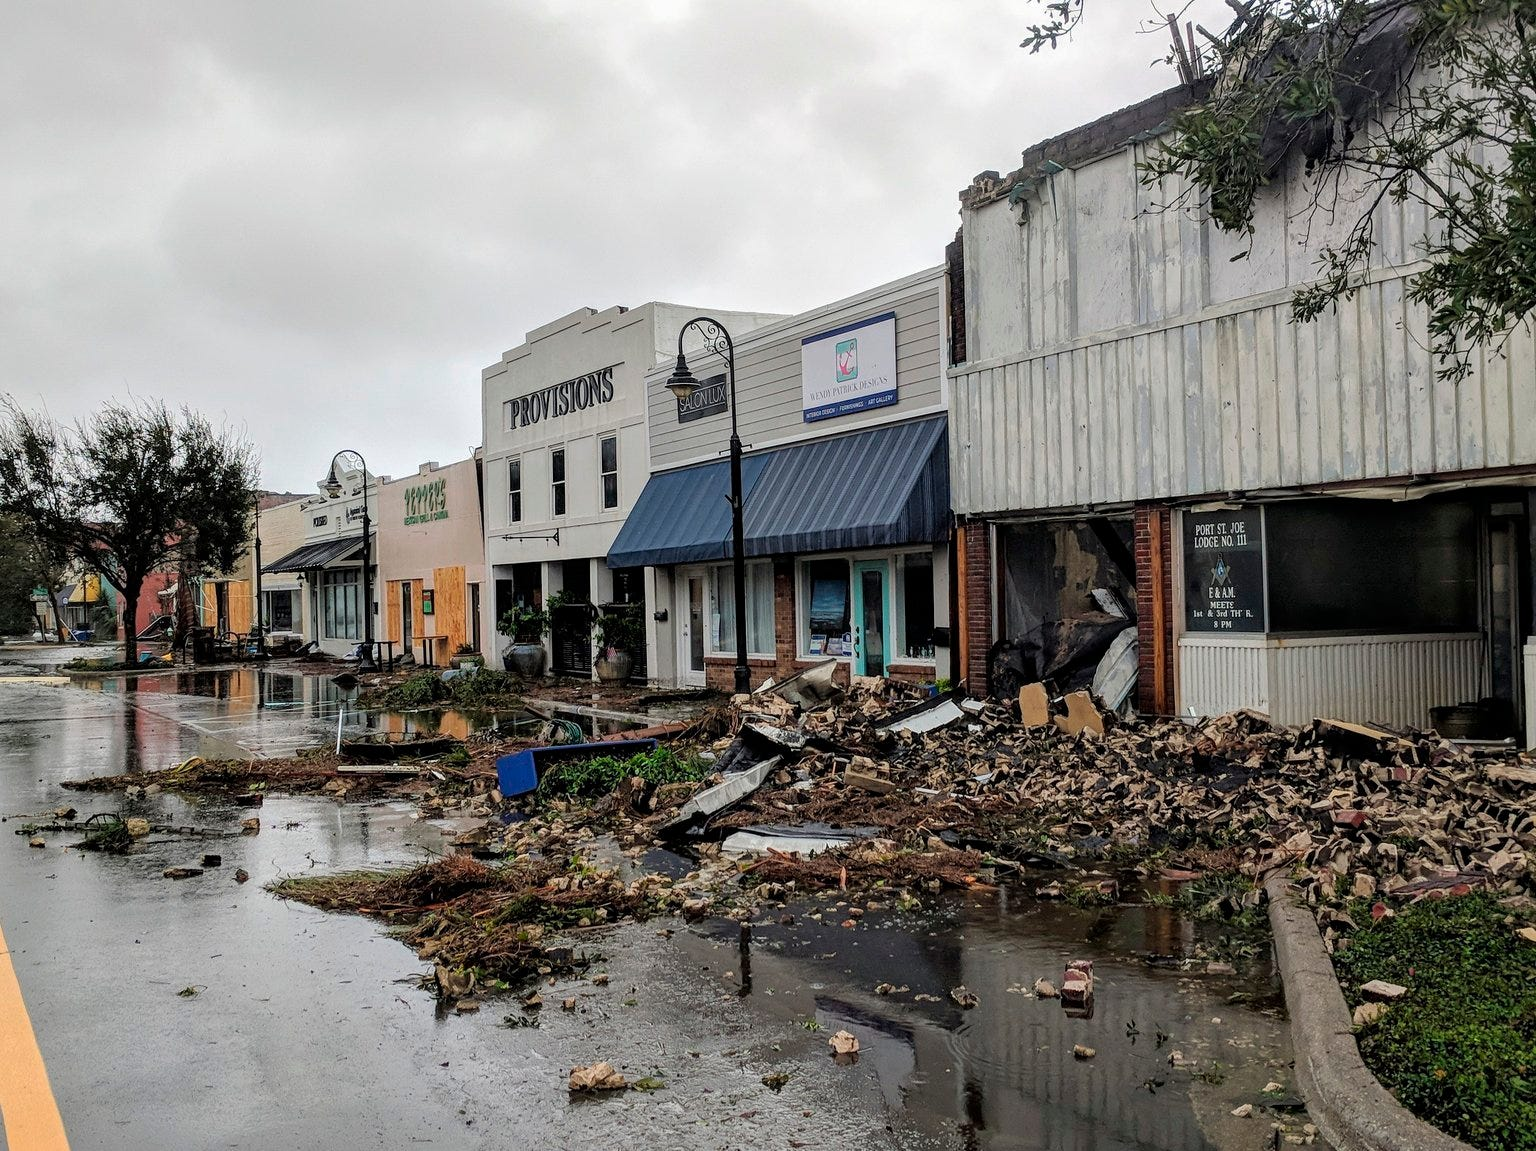 Hurricane Michael formed off the coast of Cuba carrying major Category 4 landfall in the Florida Panhandle. Surge in the Big Bend area, along with catastrophic winds at 155mph. Port St. Joe Lodge number 111, at right, lay in ruins on Reid Avenue on Wednesday, Oct. 10, 2018, in Port St. Joe, Fla., after Hurricane Michael made landfall in the Florida Panhandle.